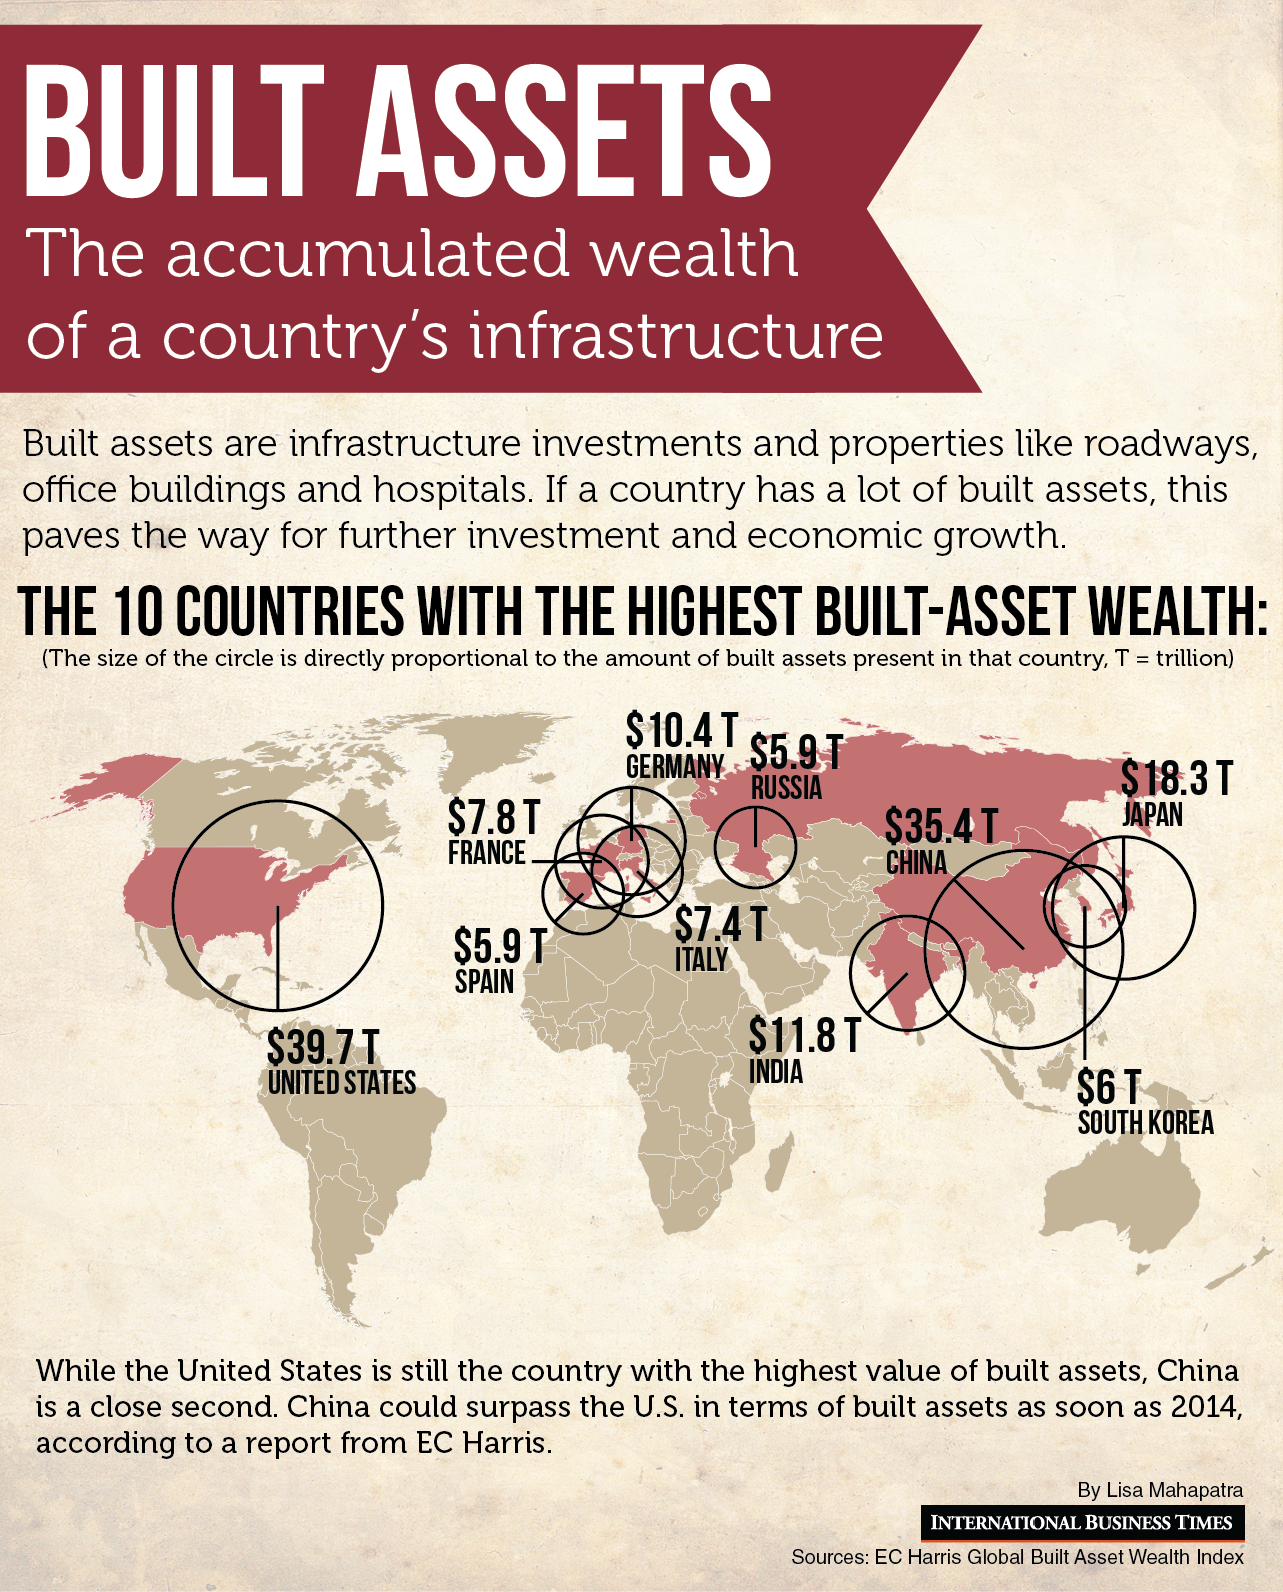 Built Asset Wealth